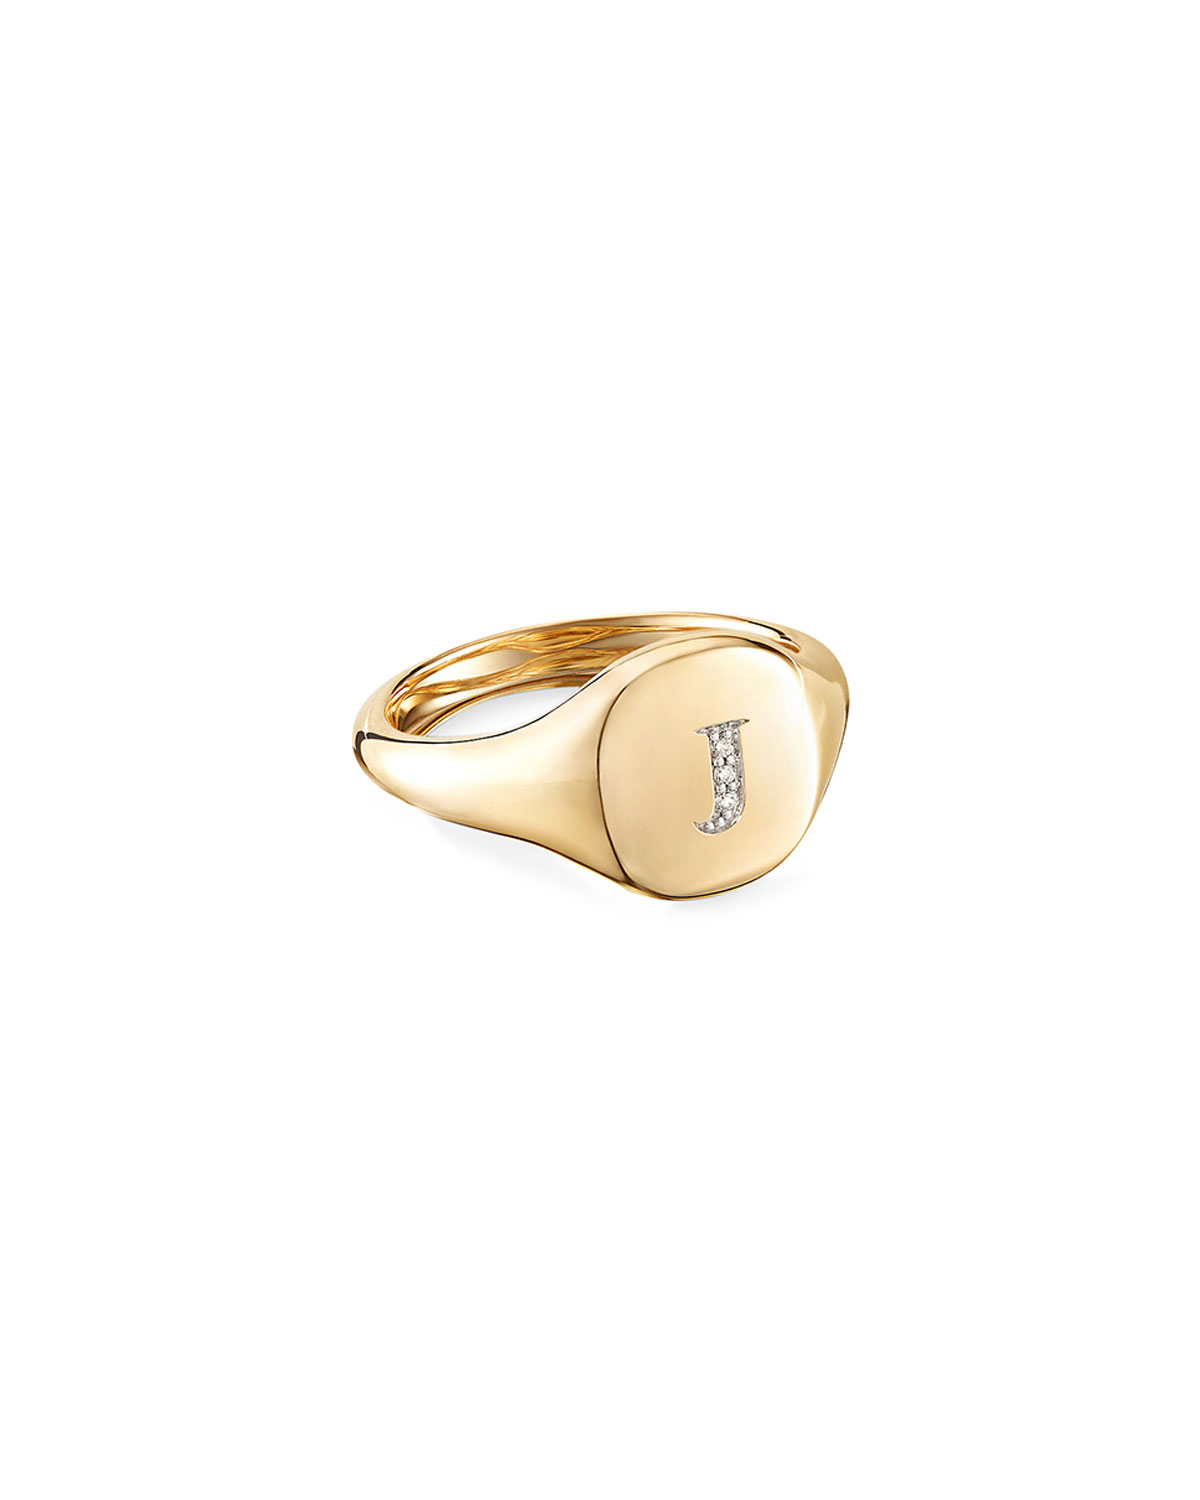 David Yurman Mini DY Initial J Pinky Ring in 18K Yellow Gold with Diamonds, Size 4